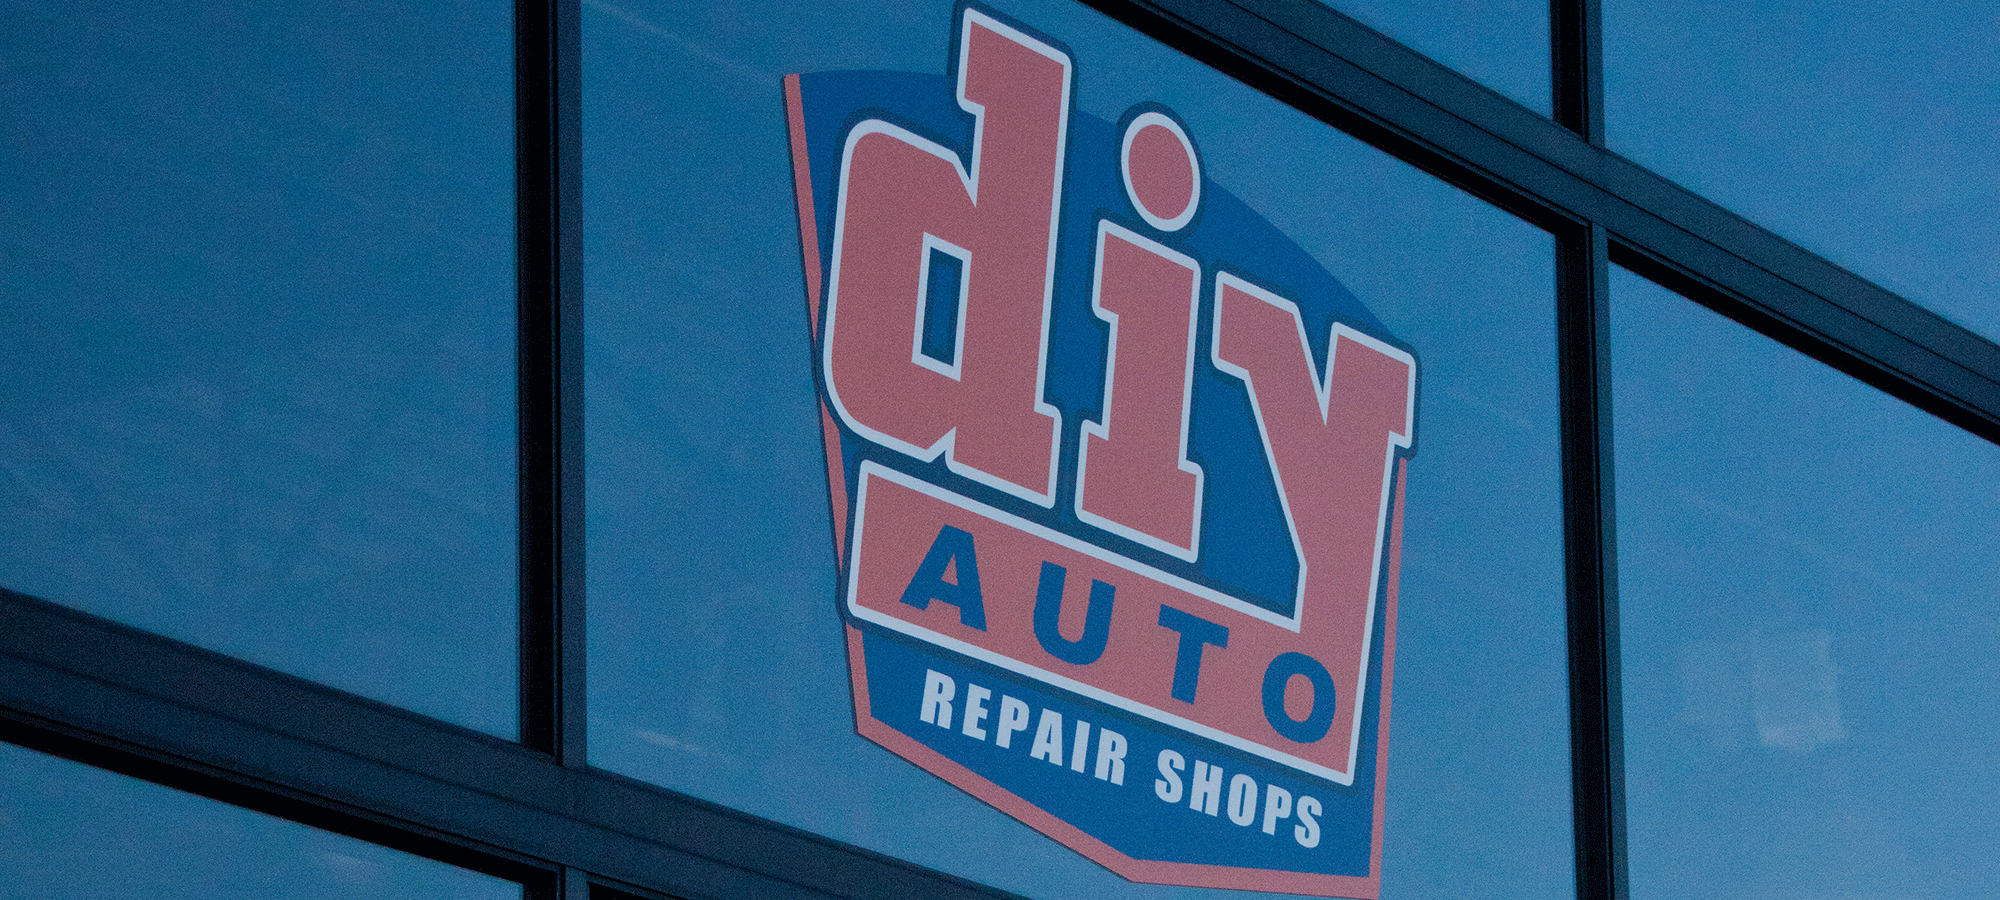 Diy auto repair shops equipped self service garage bays save even more money solutioingenieria